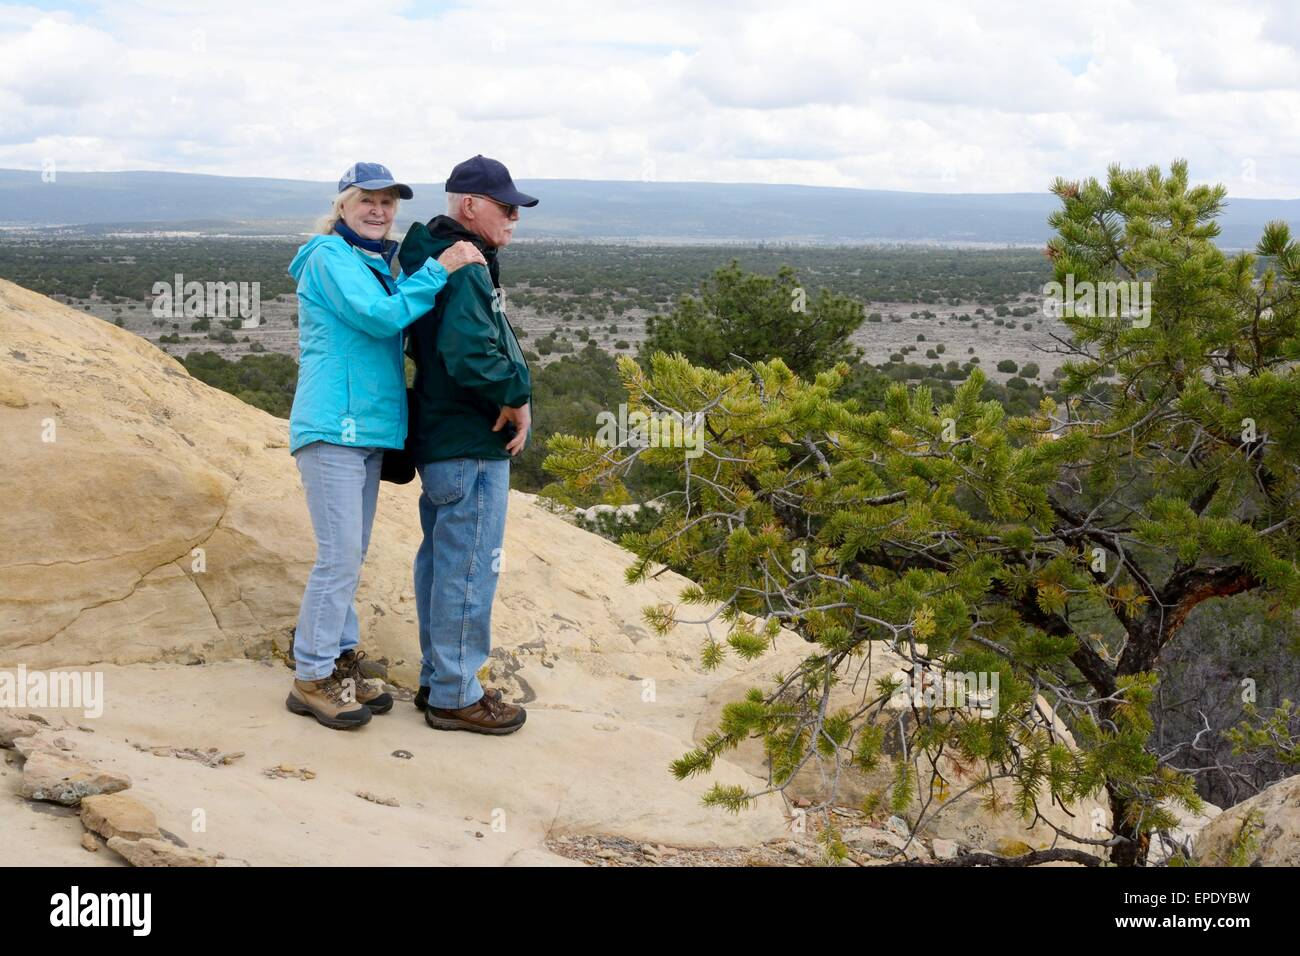 Senior Citizen siblings on sandstone bluff at El Morro National Monument New Mexico - USA - Stock Image